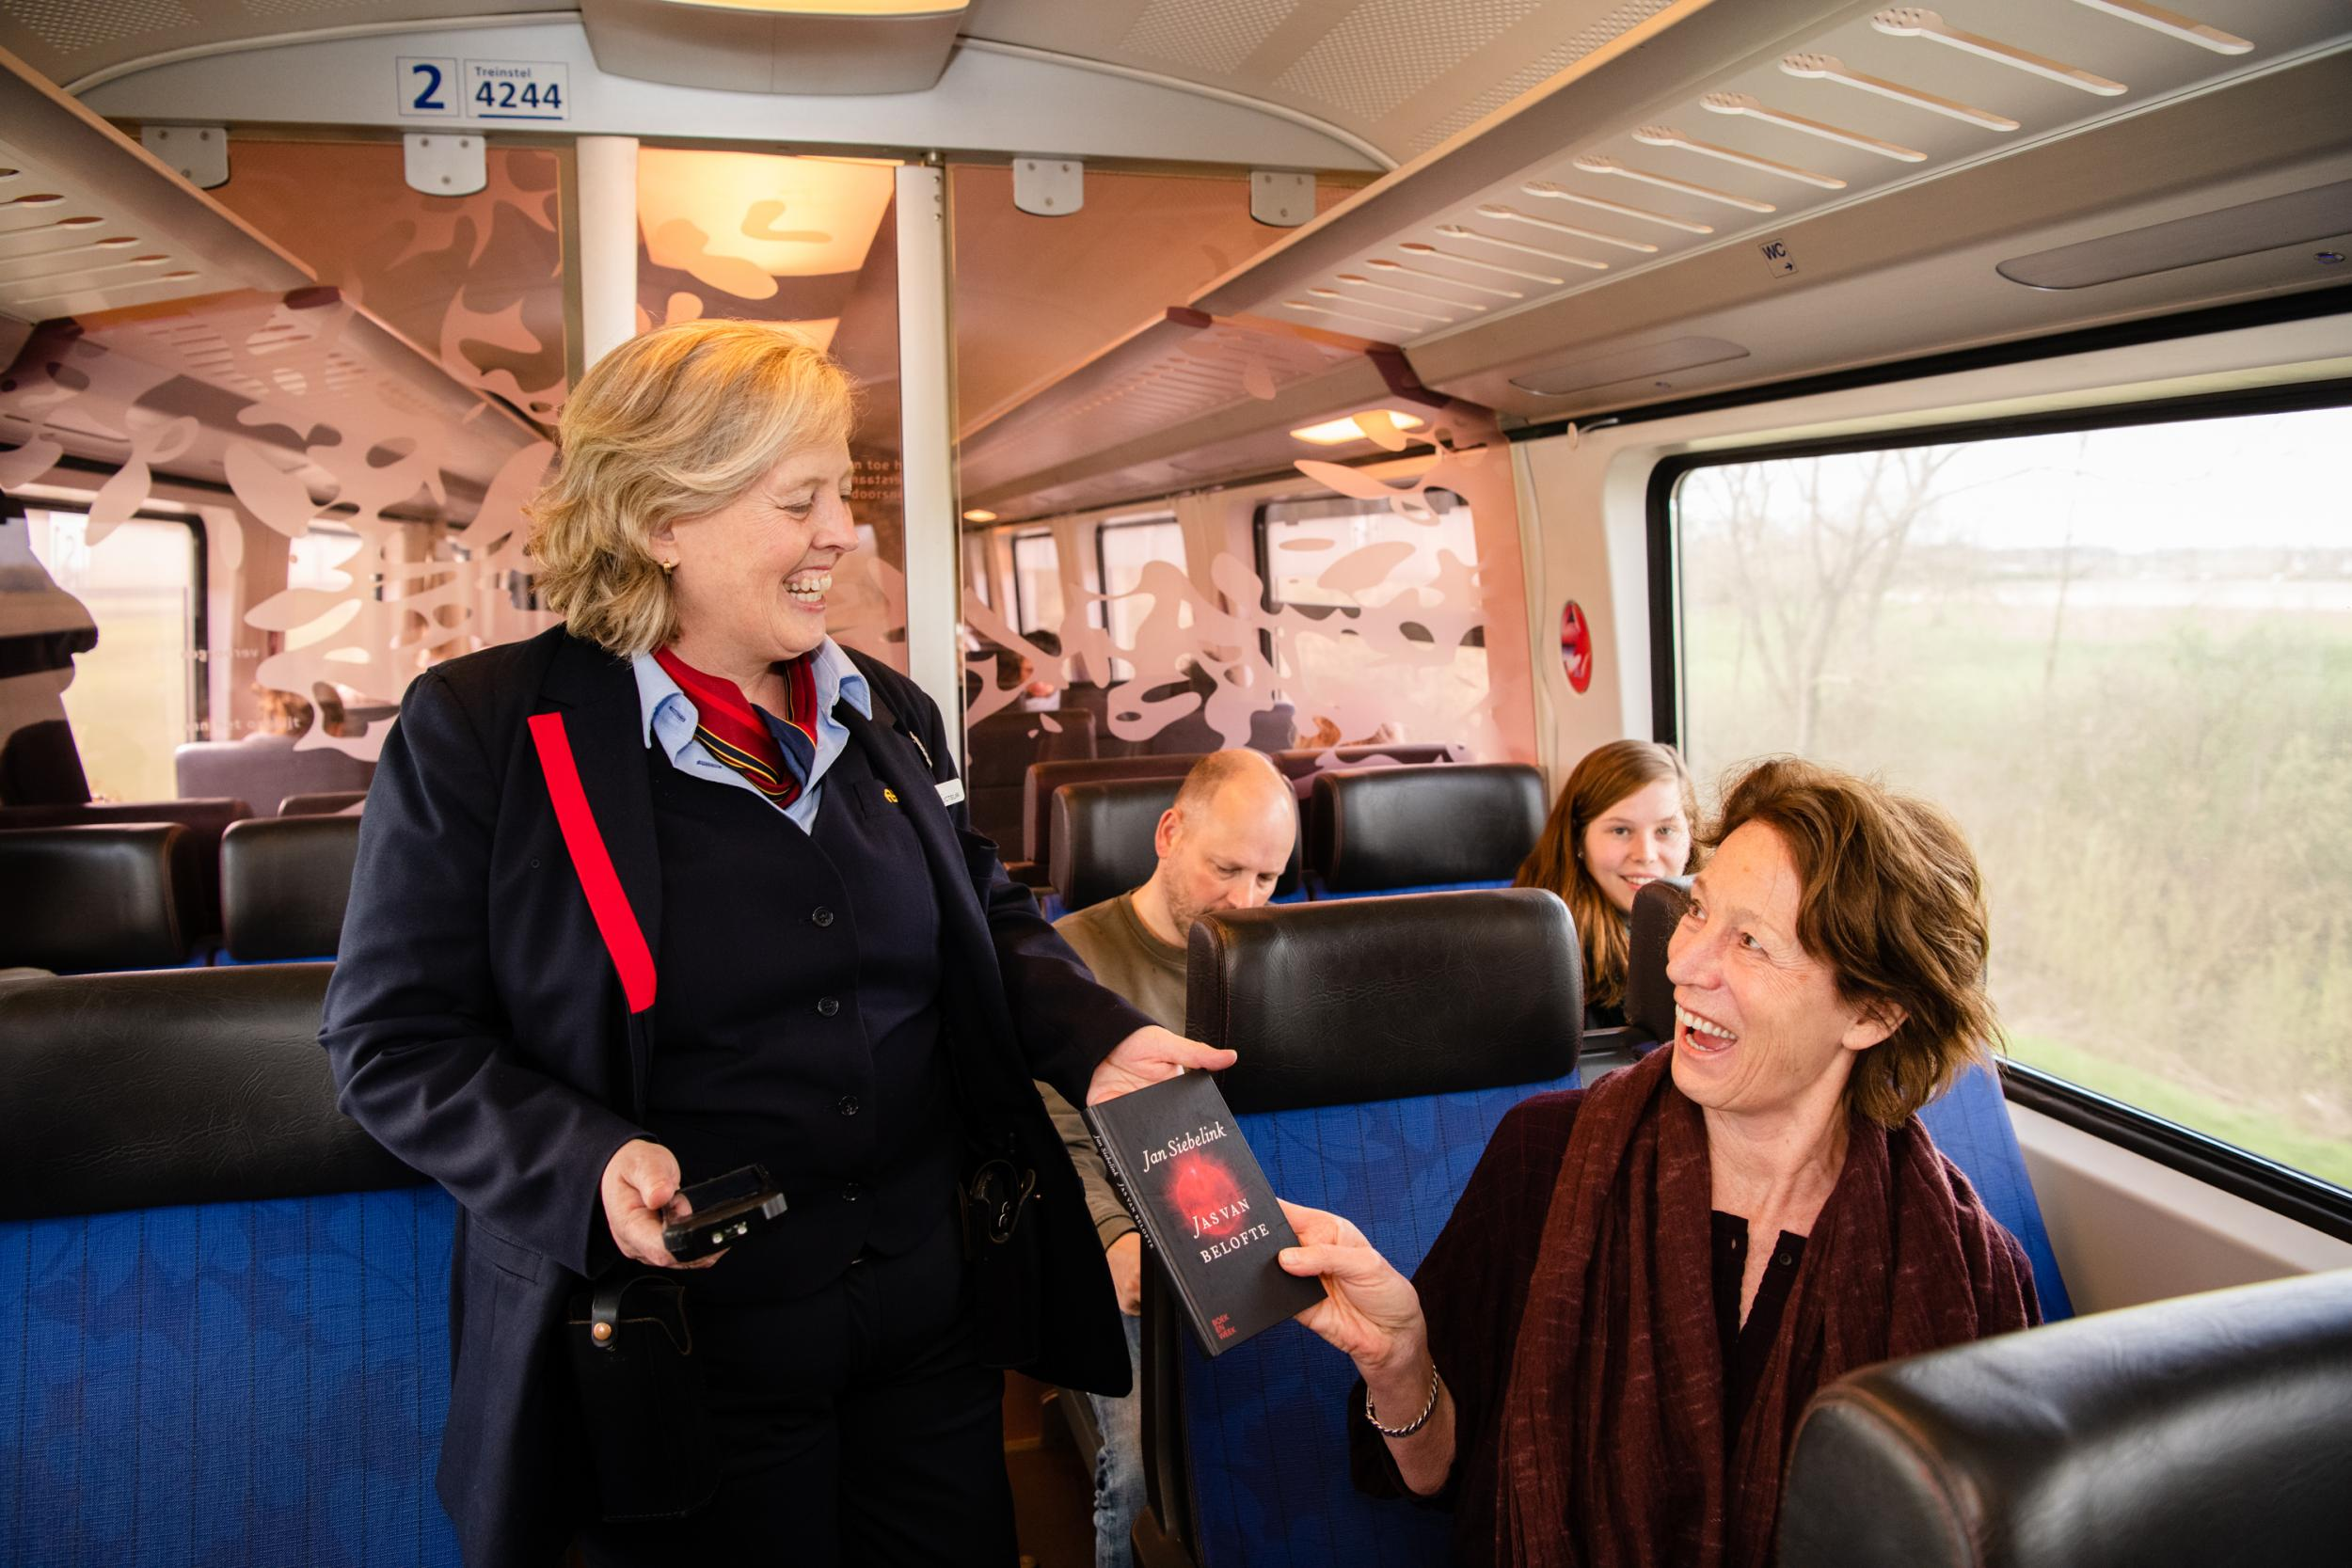 Netherlands makes trains free on national book day for those who show a book instead of ticket